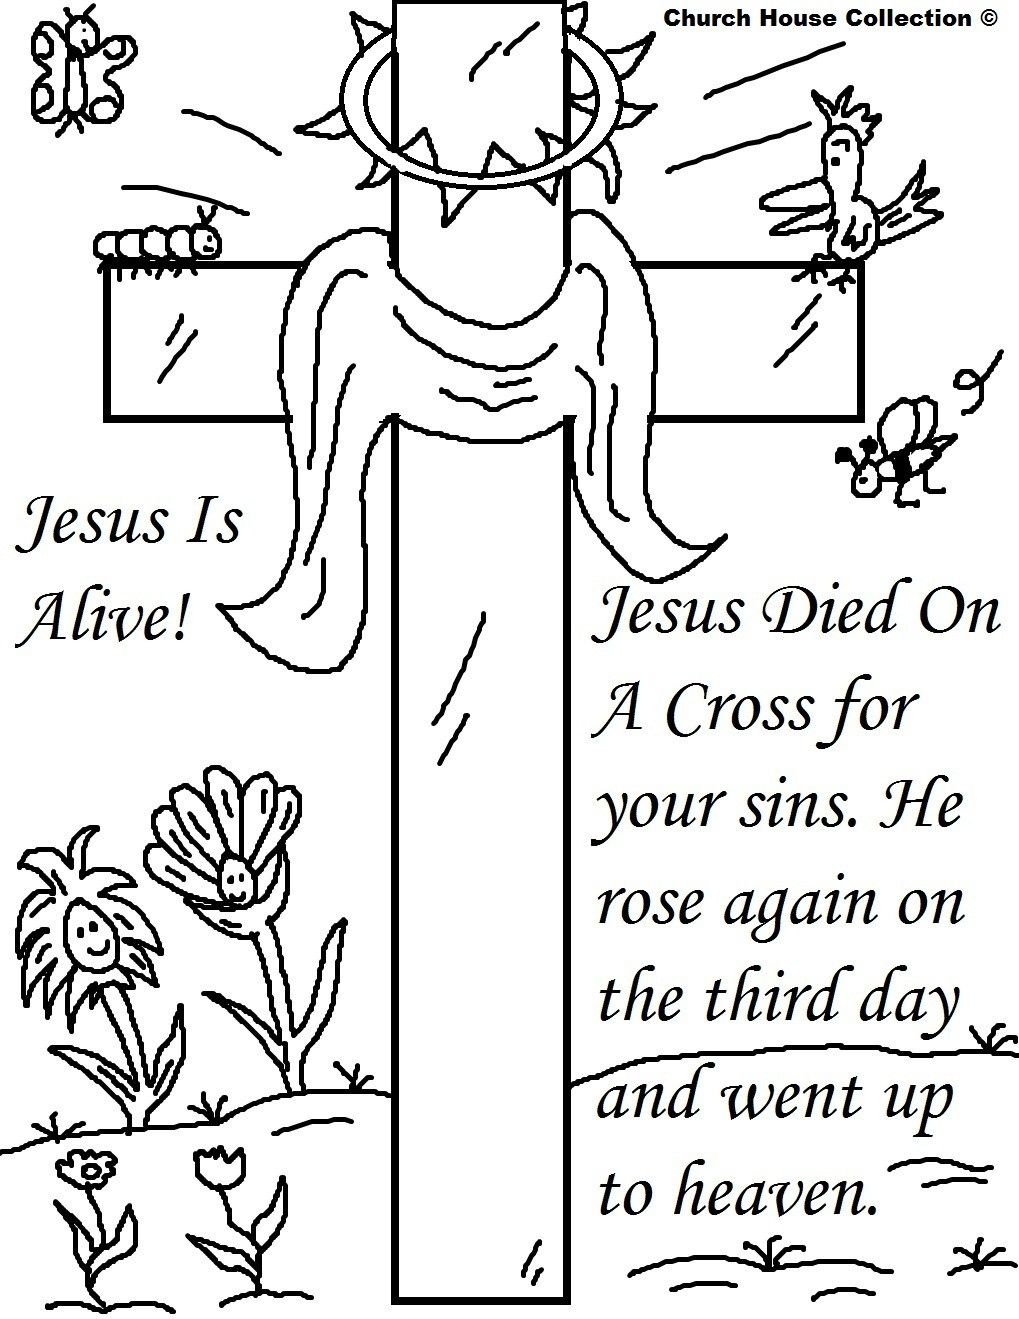 Jesus Easter Resurrection Coloring Pages Pixels Really Awesome For Kids To Learn And Color